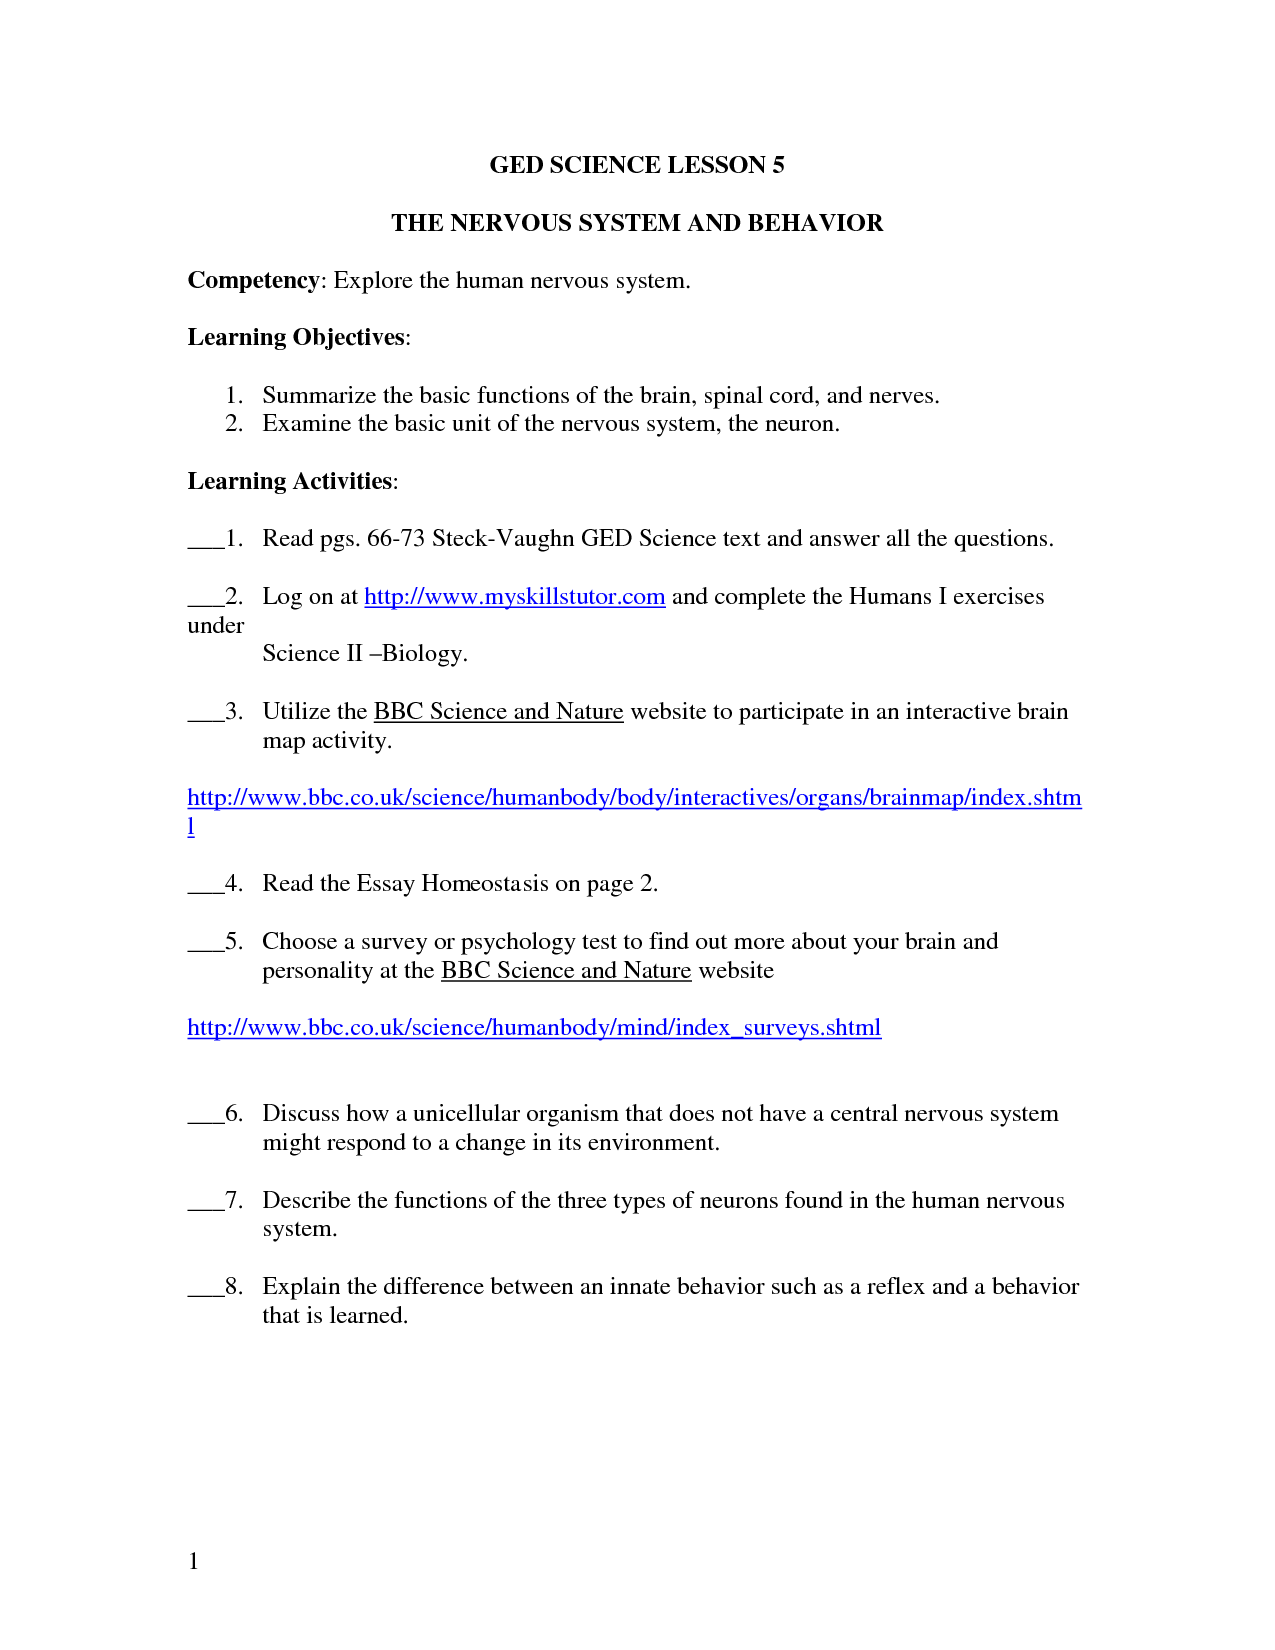 Worksheet Ged Science Worksheets Grass Fedjp Worksheet Study Site